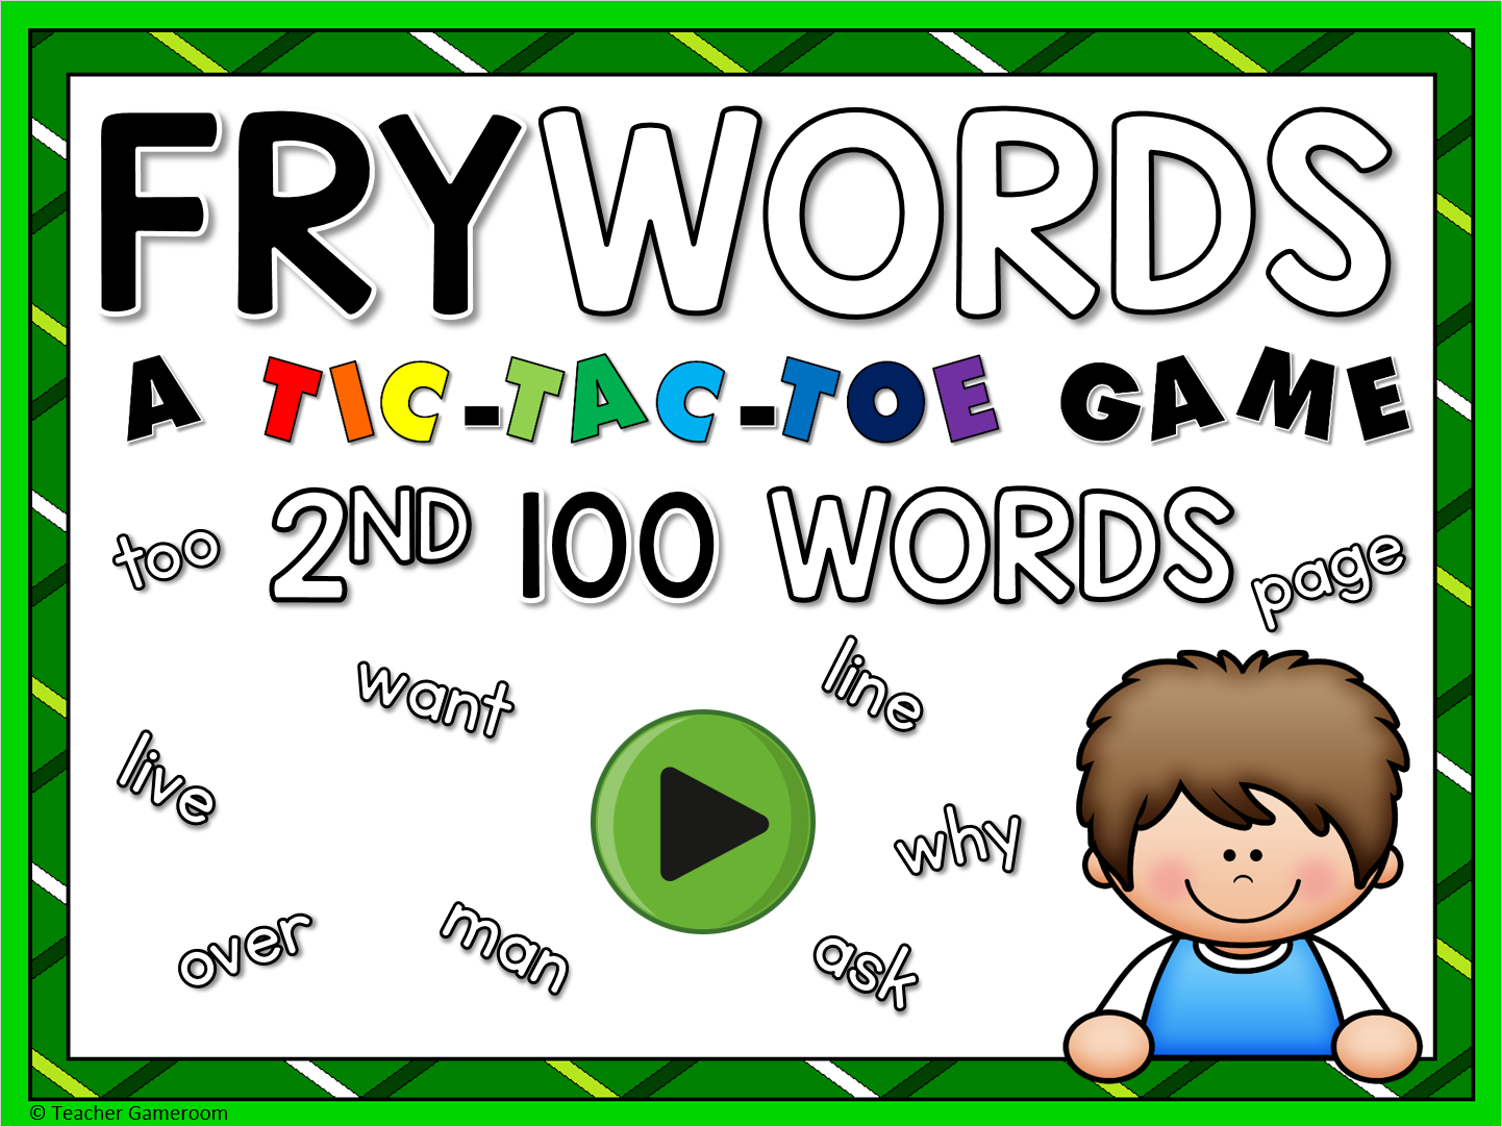 Tic-Tac-Toe Fry Words 2nd 100 Game